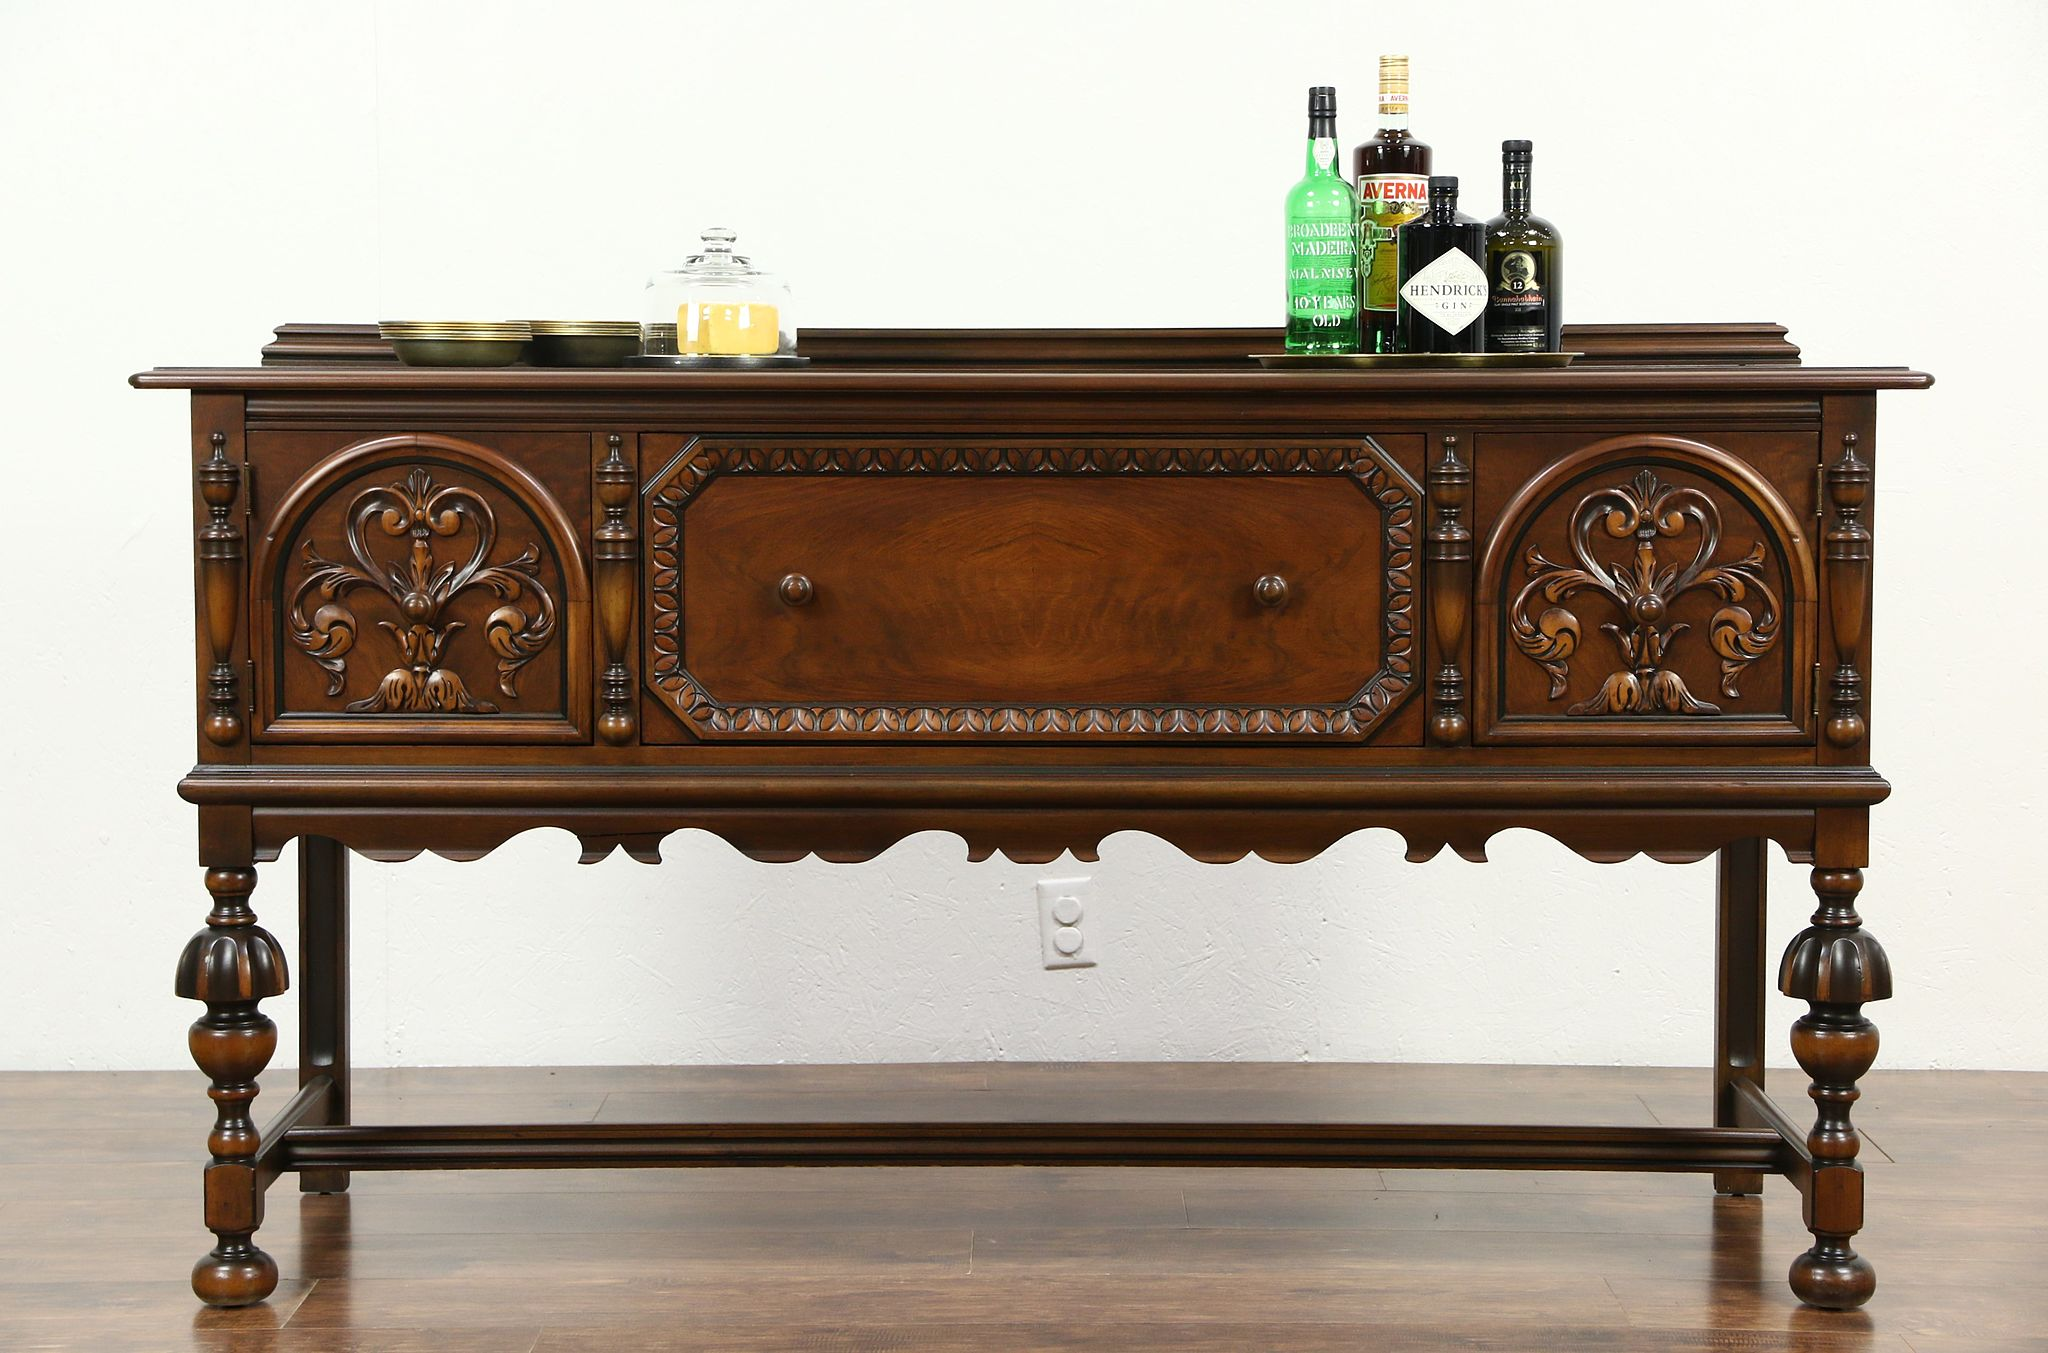 Antique buffet table furniture - Berkey Gay Signed 1925 Antique Tudor Style Sideboard Server